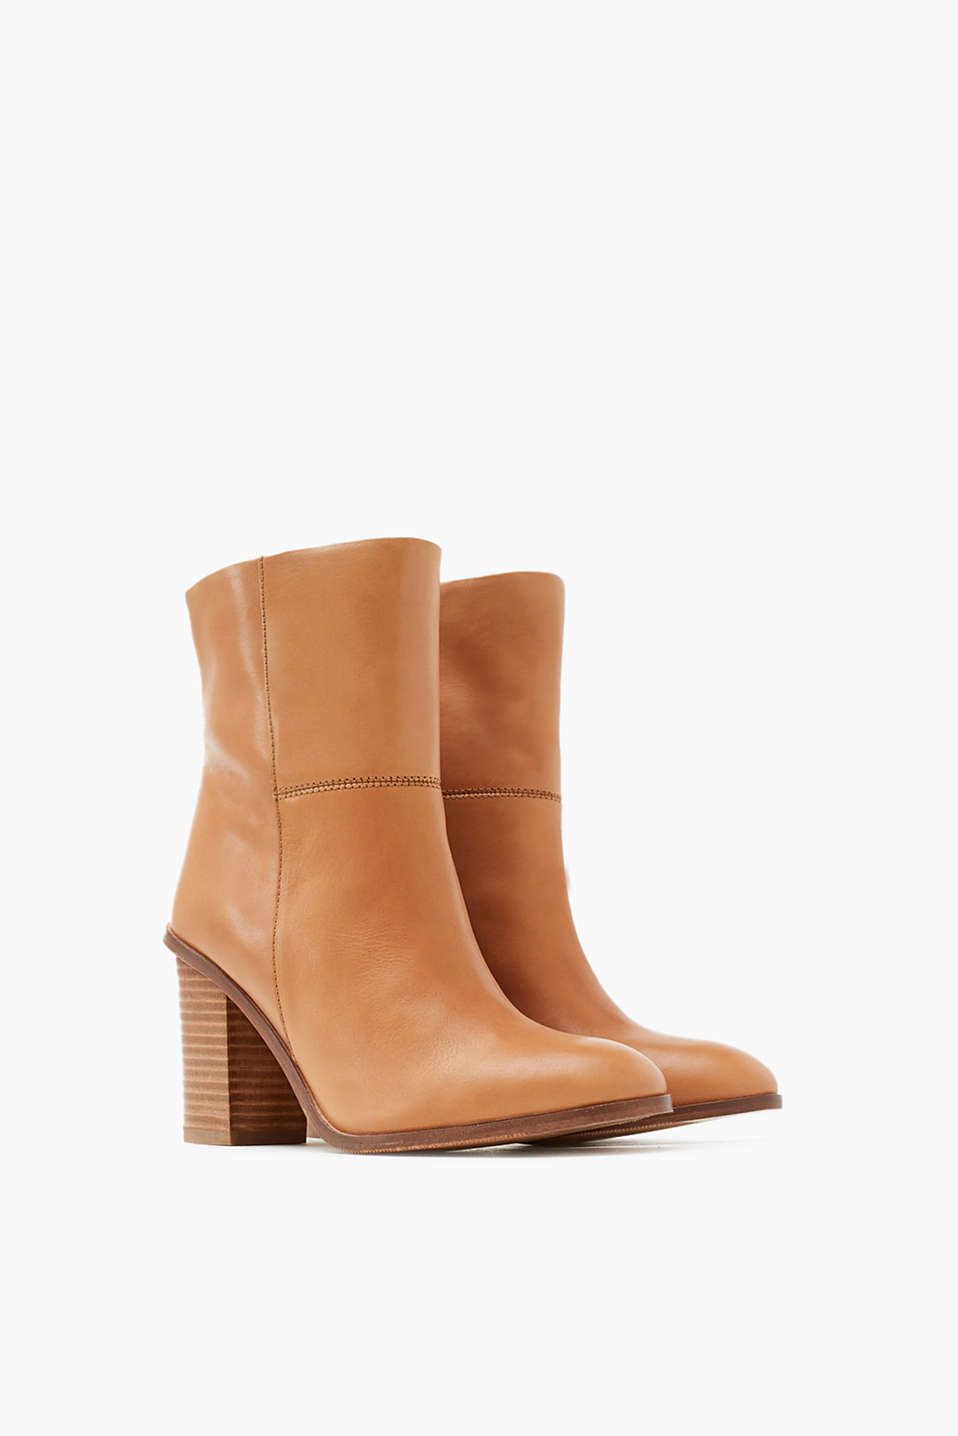 Ankle boots in smooth leather, block heel